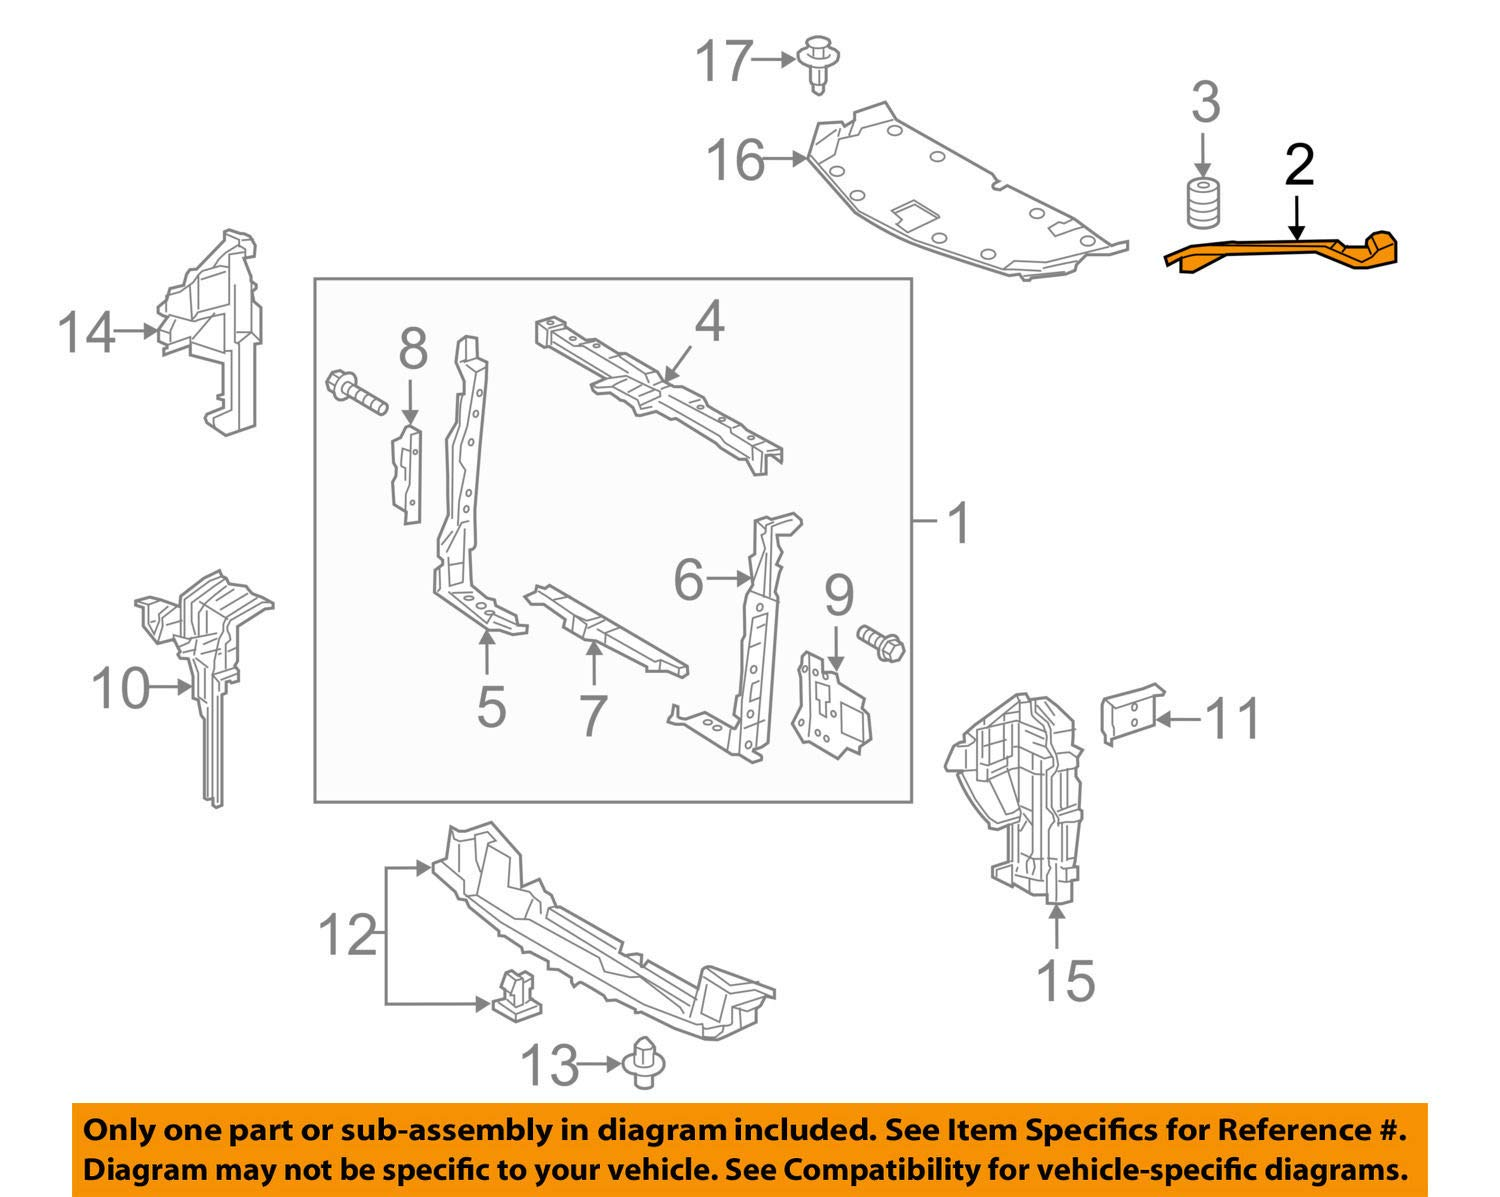 Toyota Lexus OEM 15-16 NX200t Radiator Core-Side Support Left 5320378010 by Toyota (Image #1)